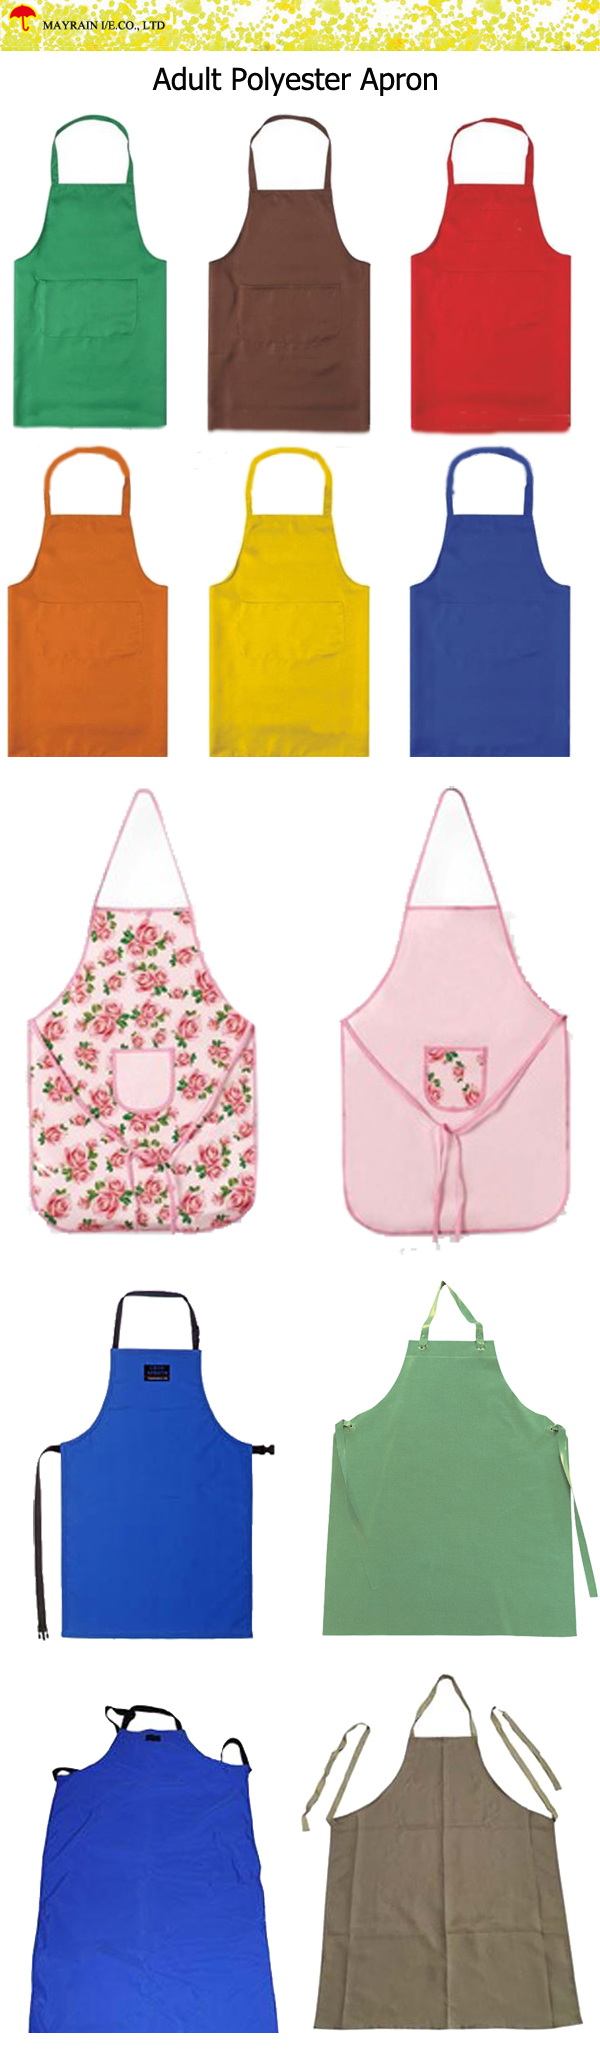 Adult Polyester Apron